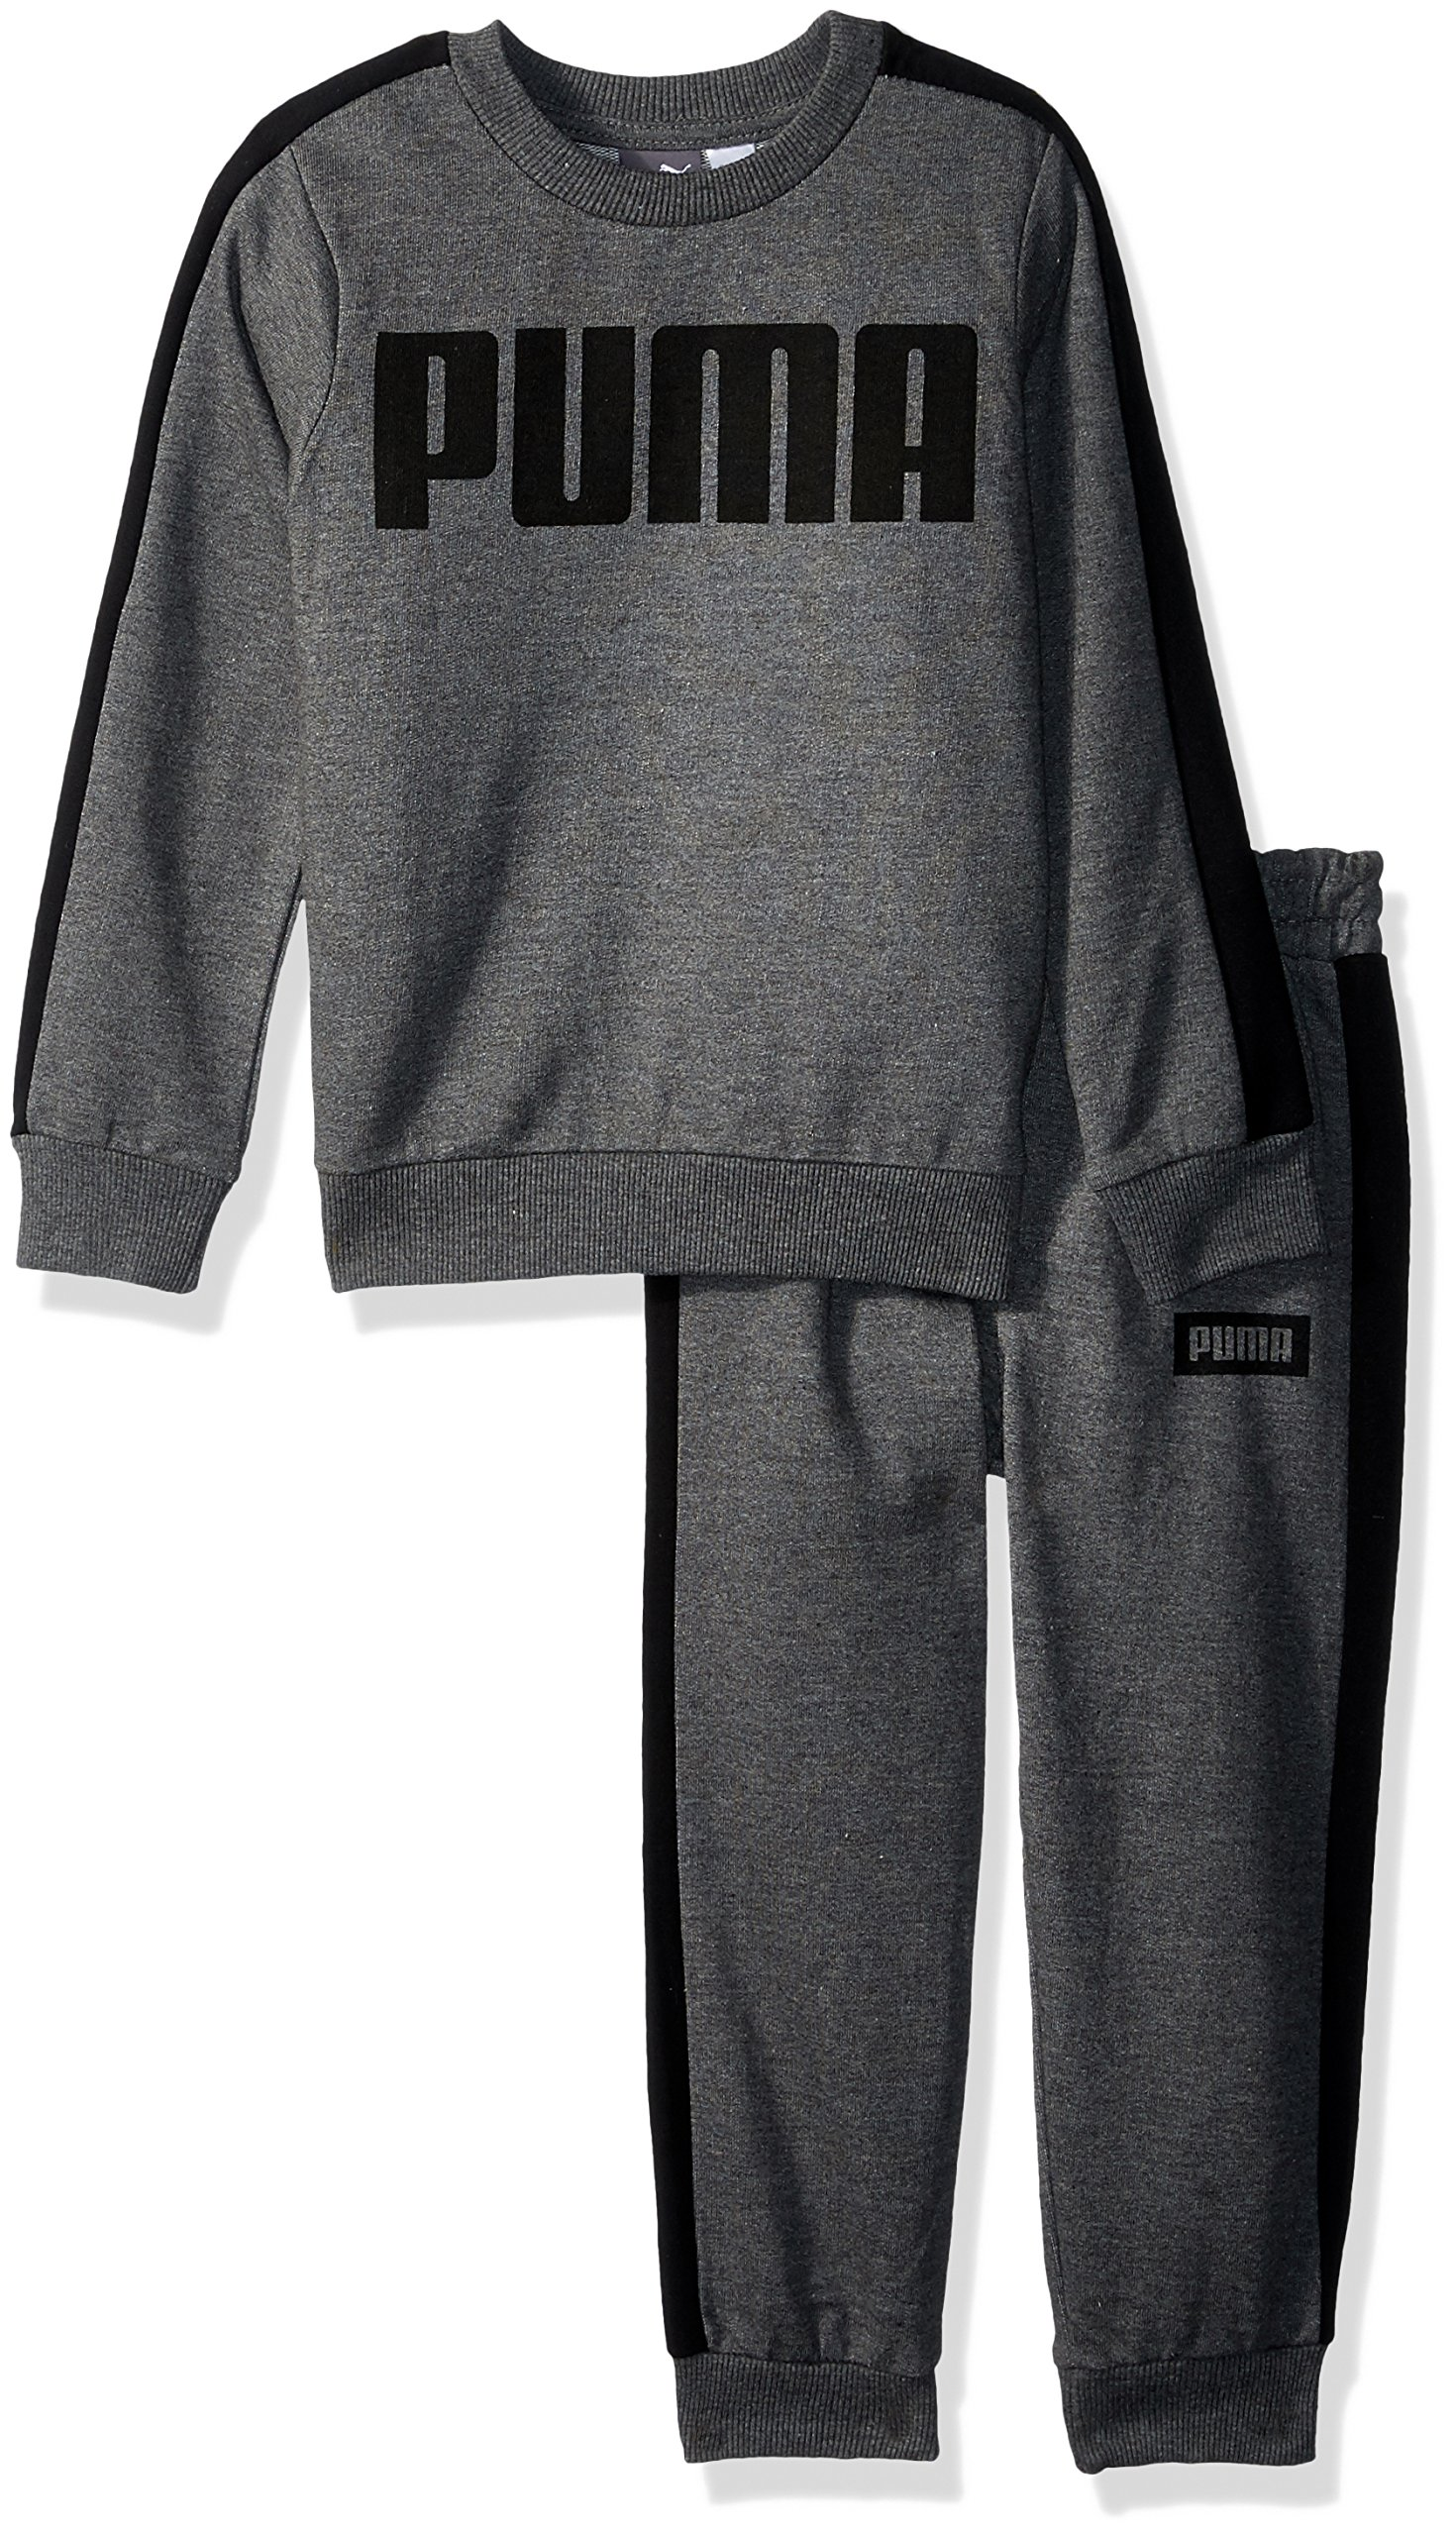 PUMA Toddler Boys' Rebel 2 Piece Set, Charcoal Heather, 4T by PUMA